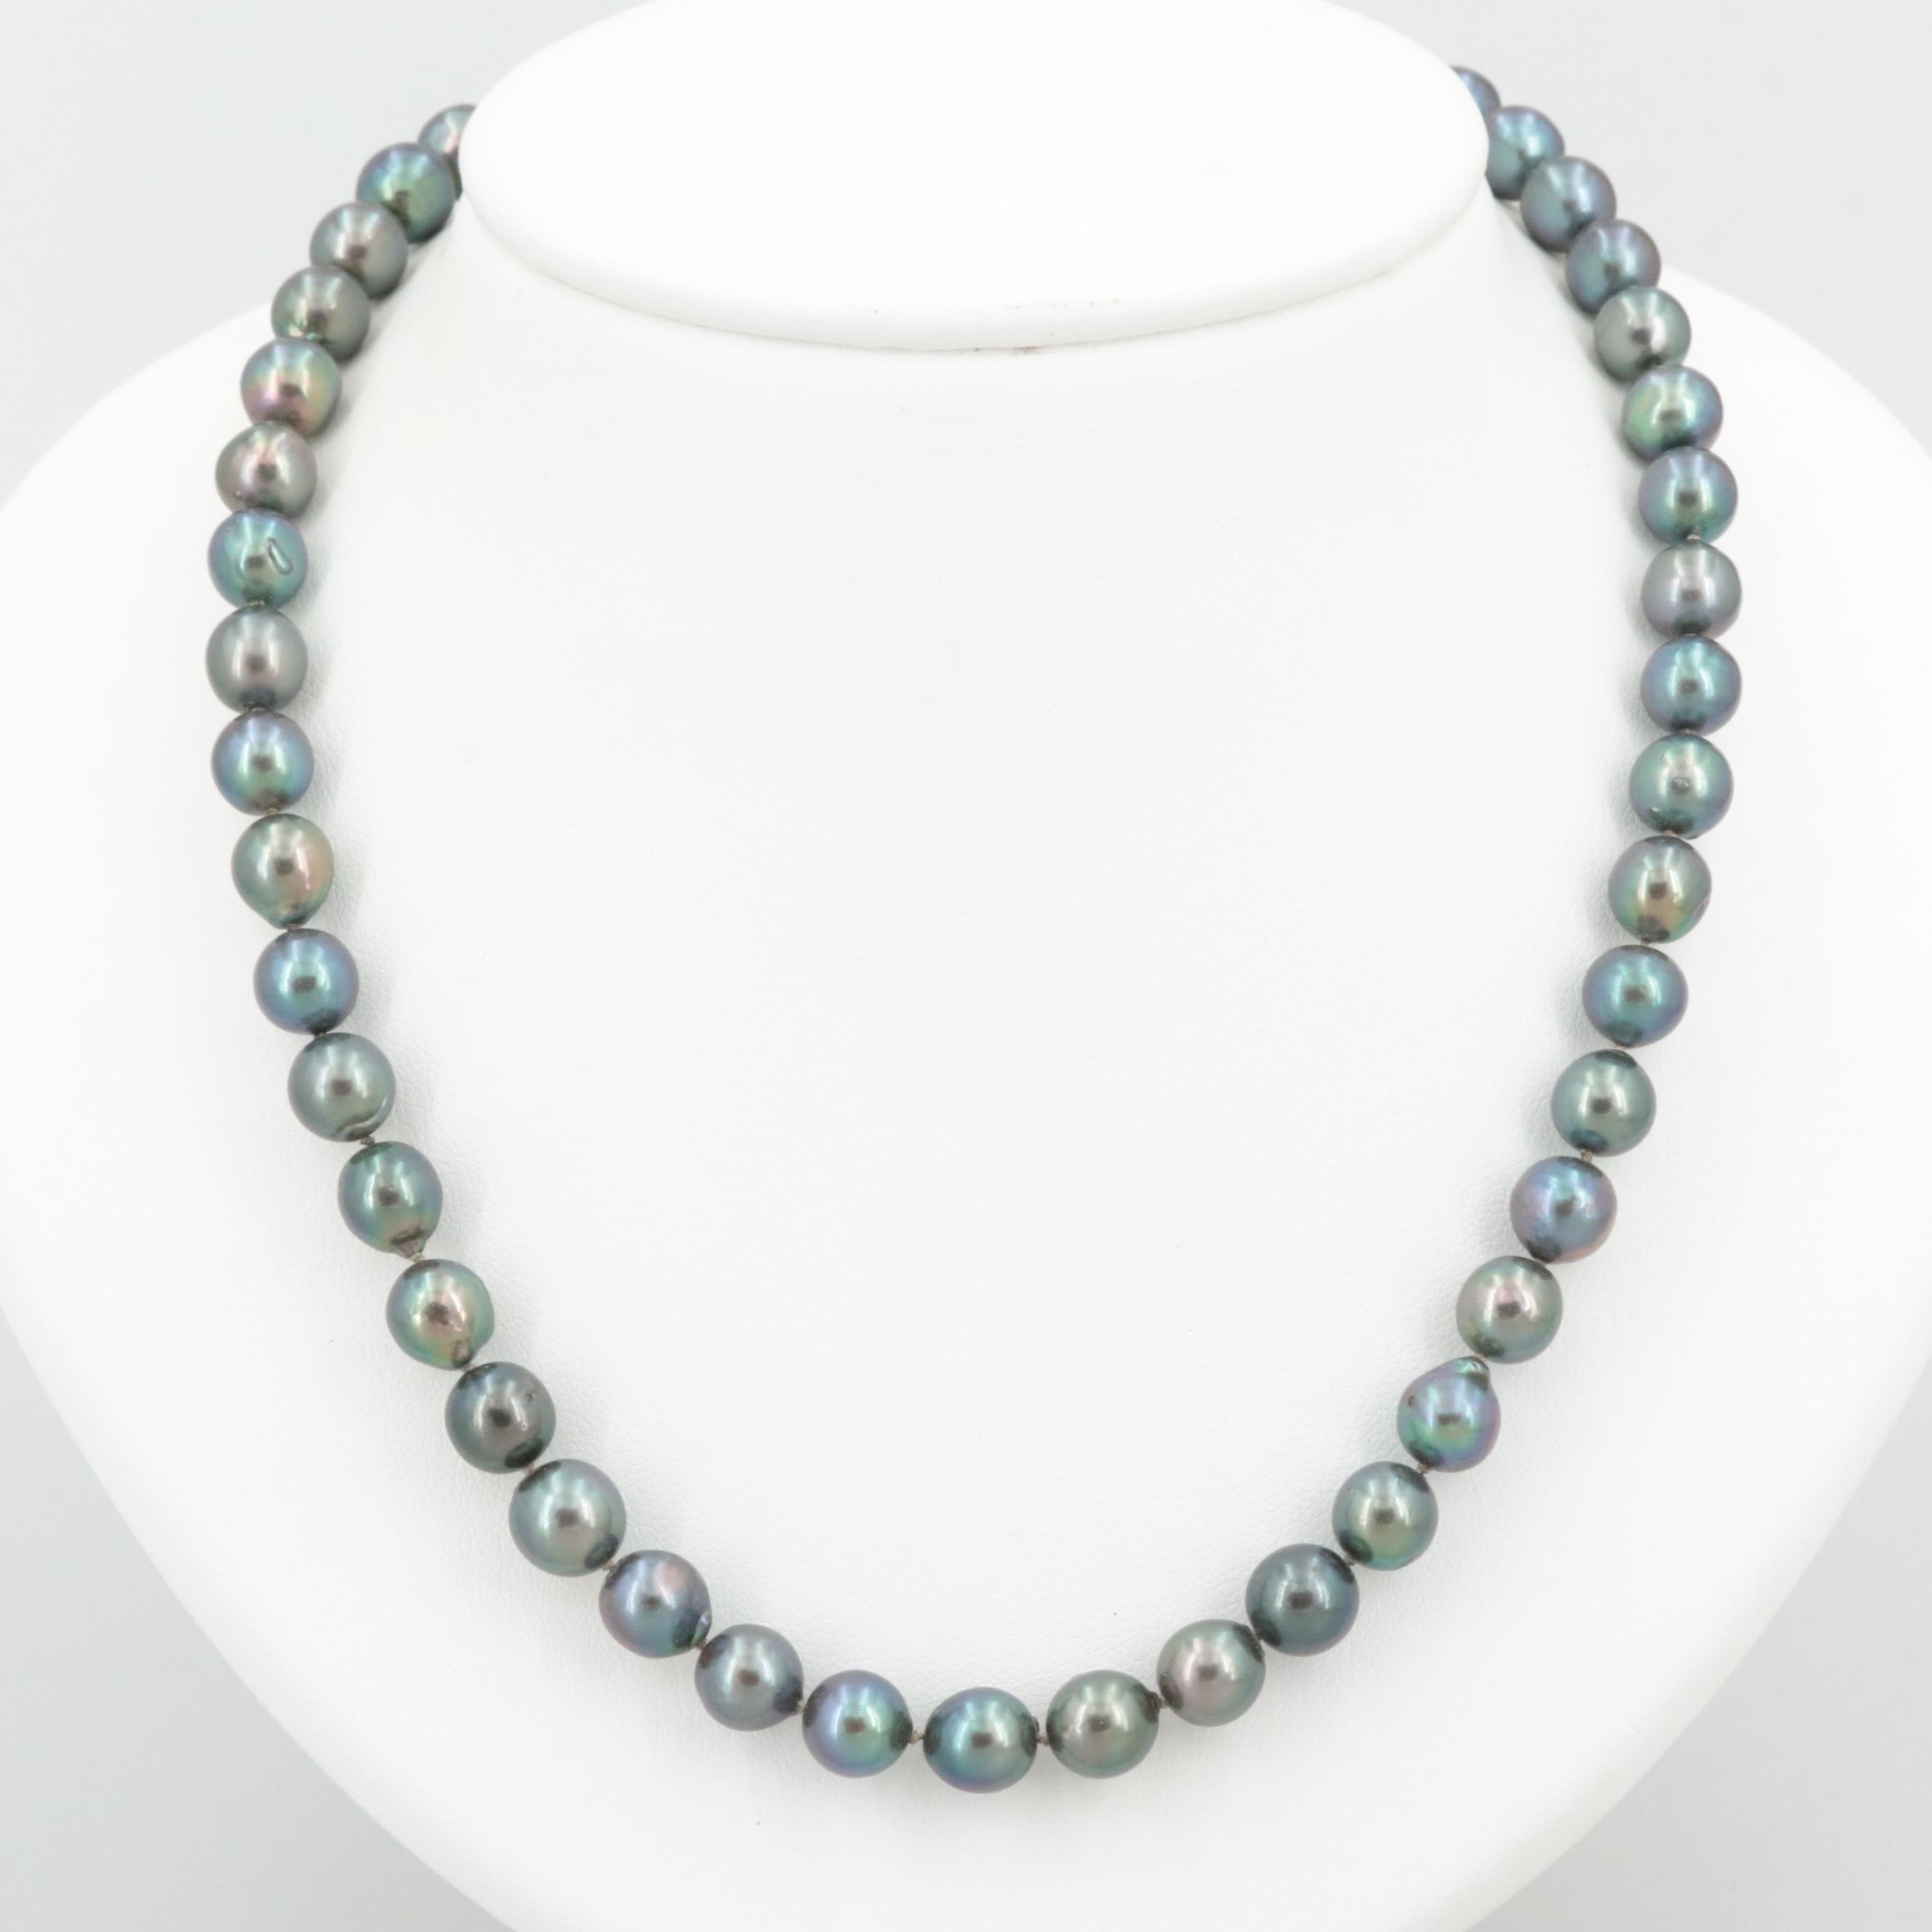 Sterling Silver Cultured Pearl Necklace with Loose Cultured Pearls